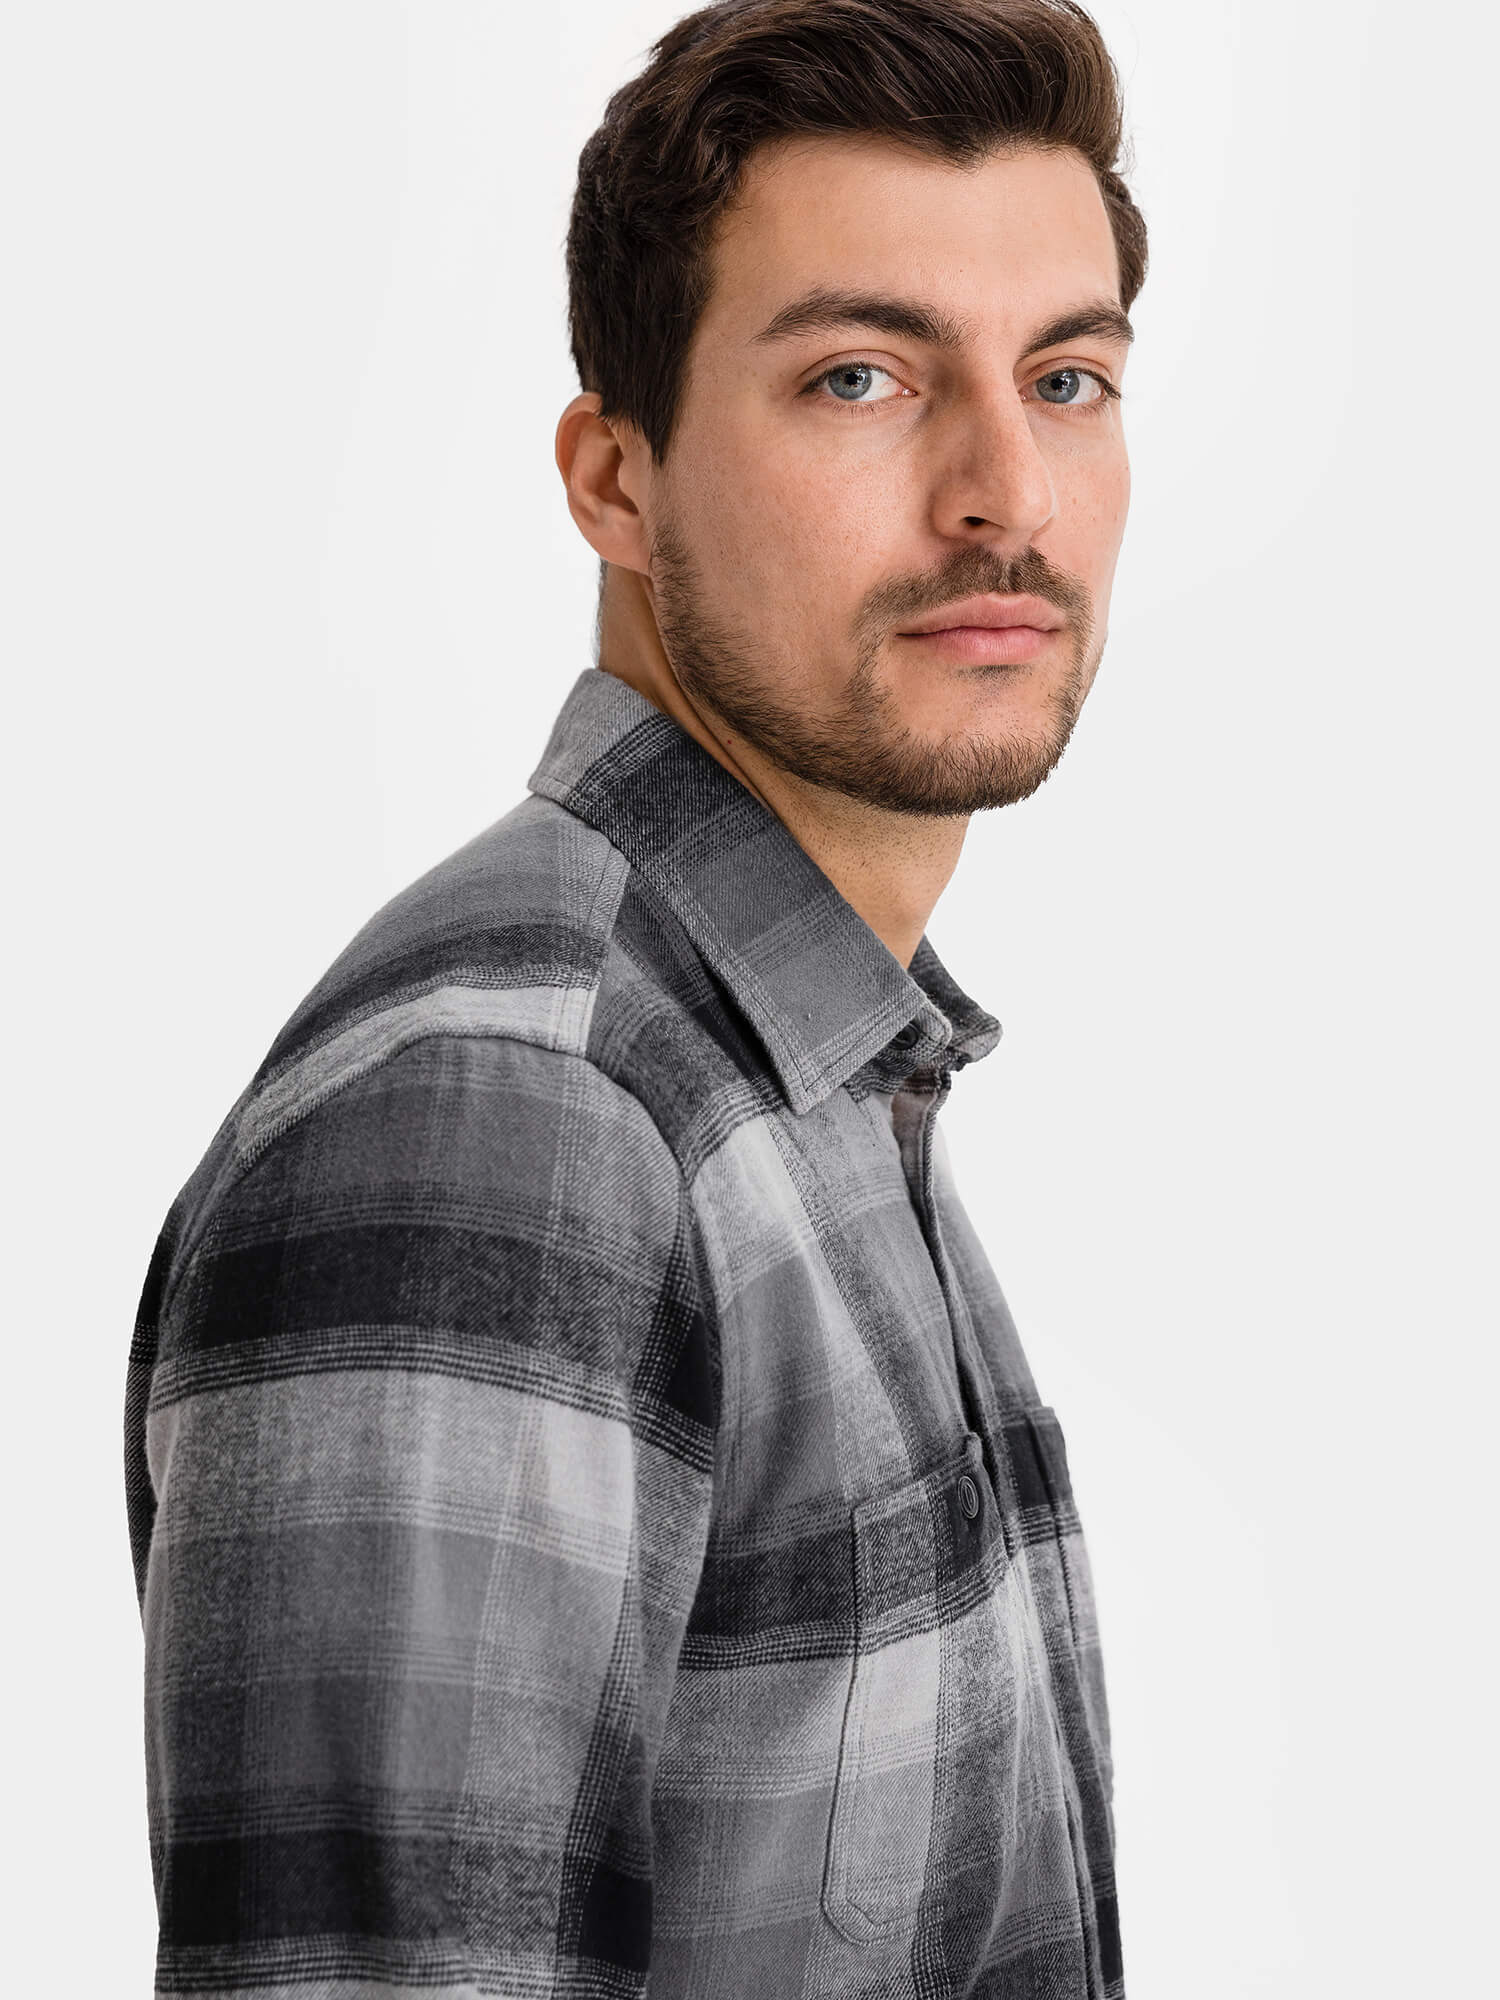 Košeľa flannel shirt in untucked fit (3)